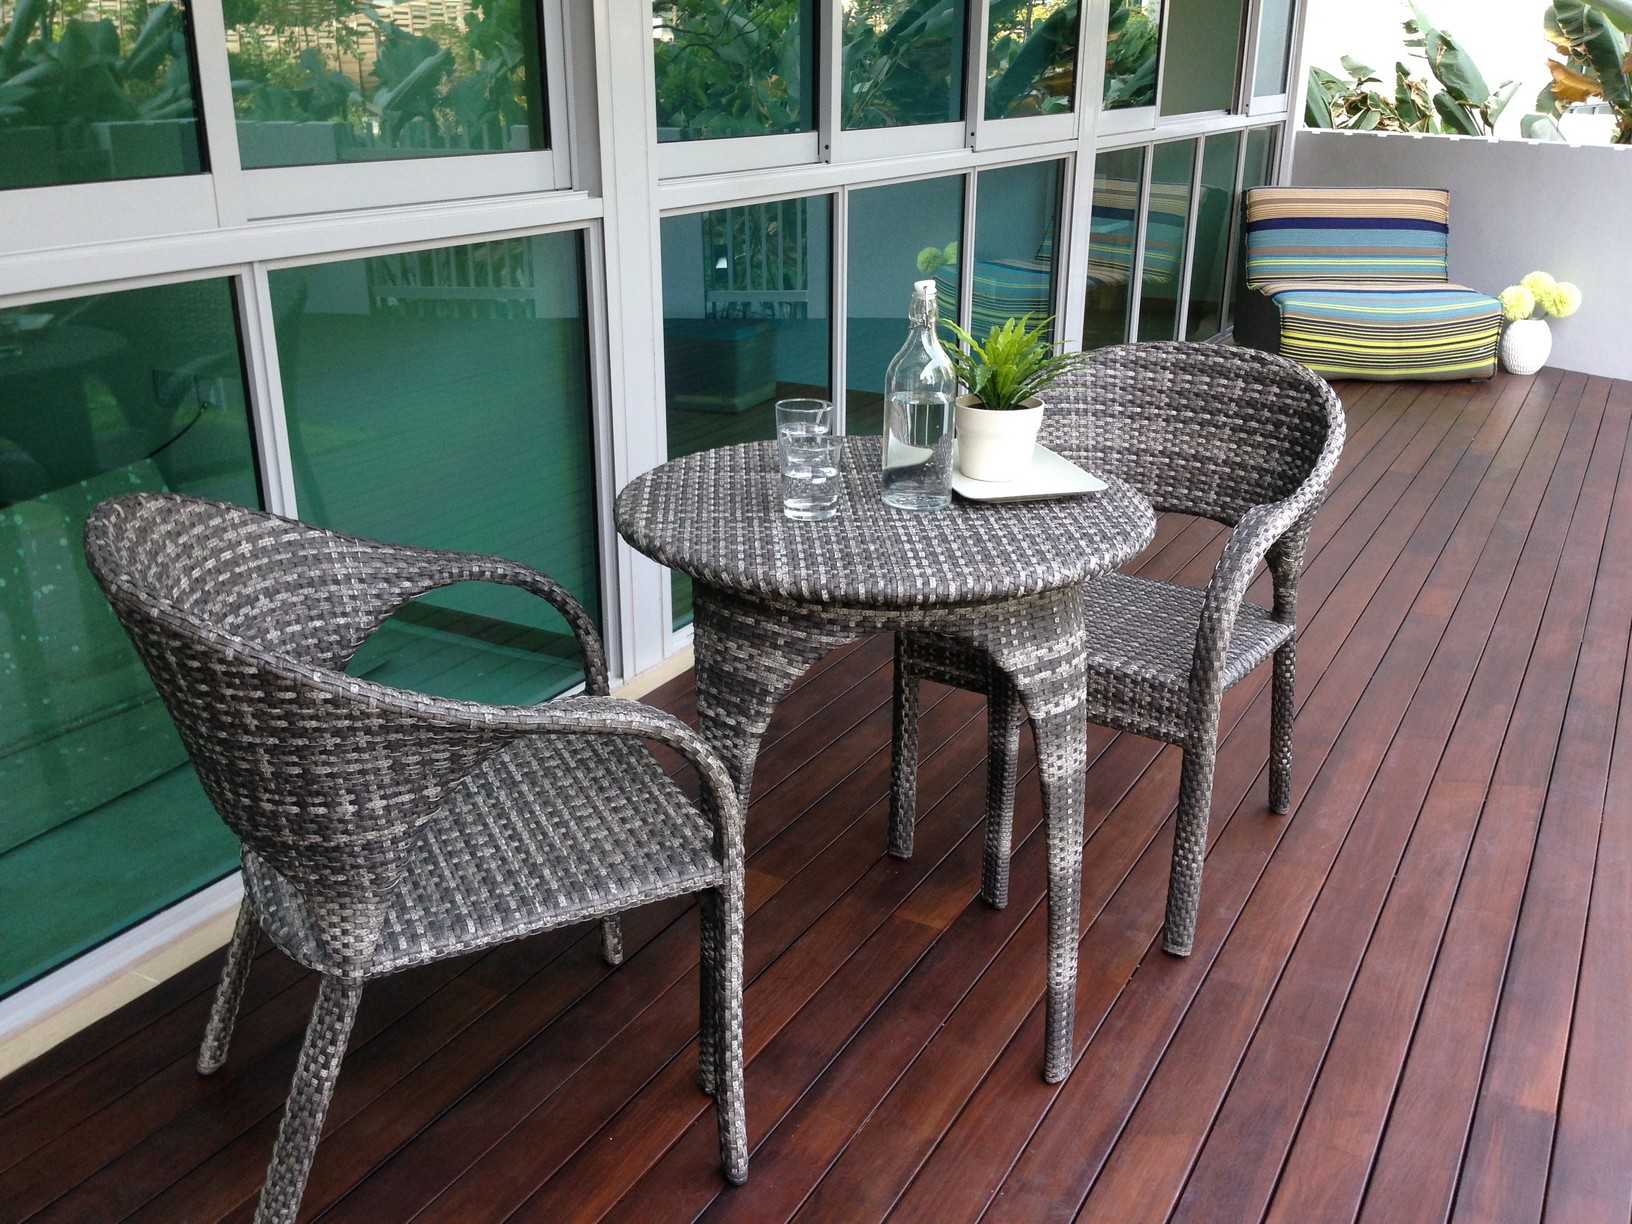 Apartment balcony furniture homesfeed for Apartment patio